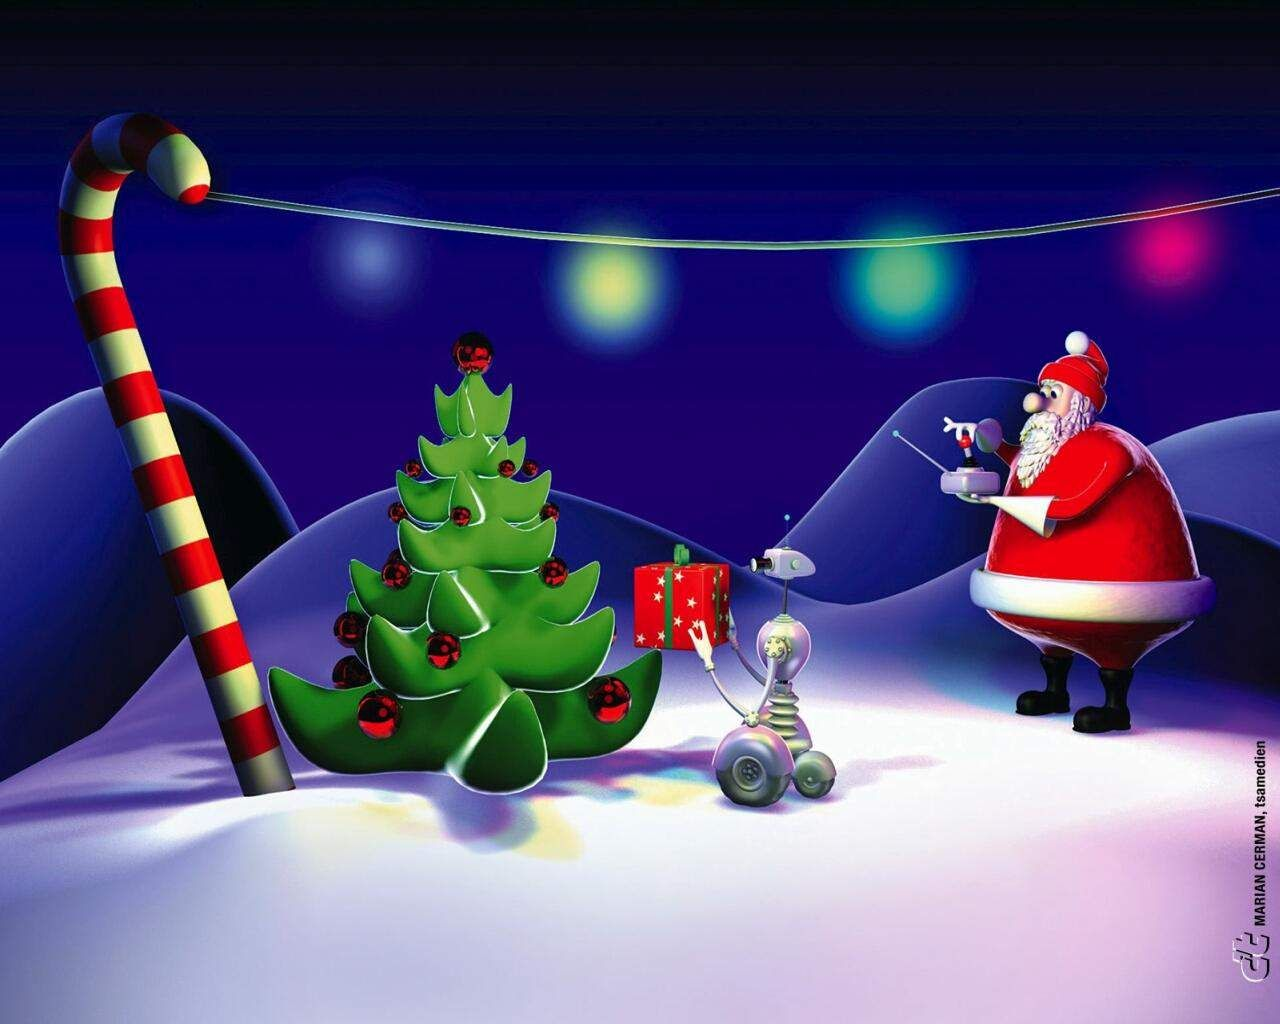 New Santa Animated Merry Christmas HD Wallpaper With